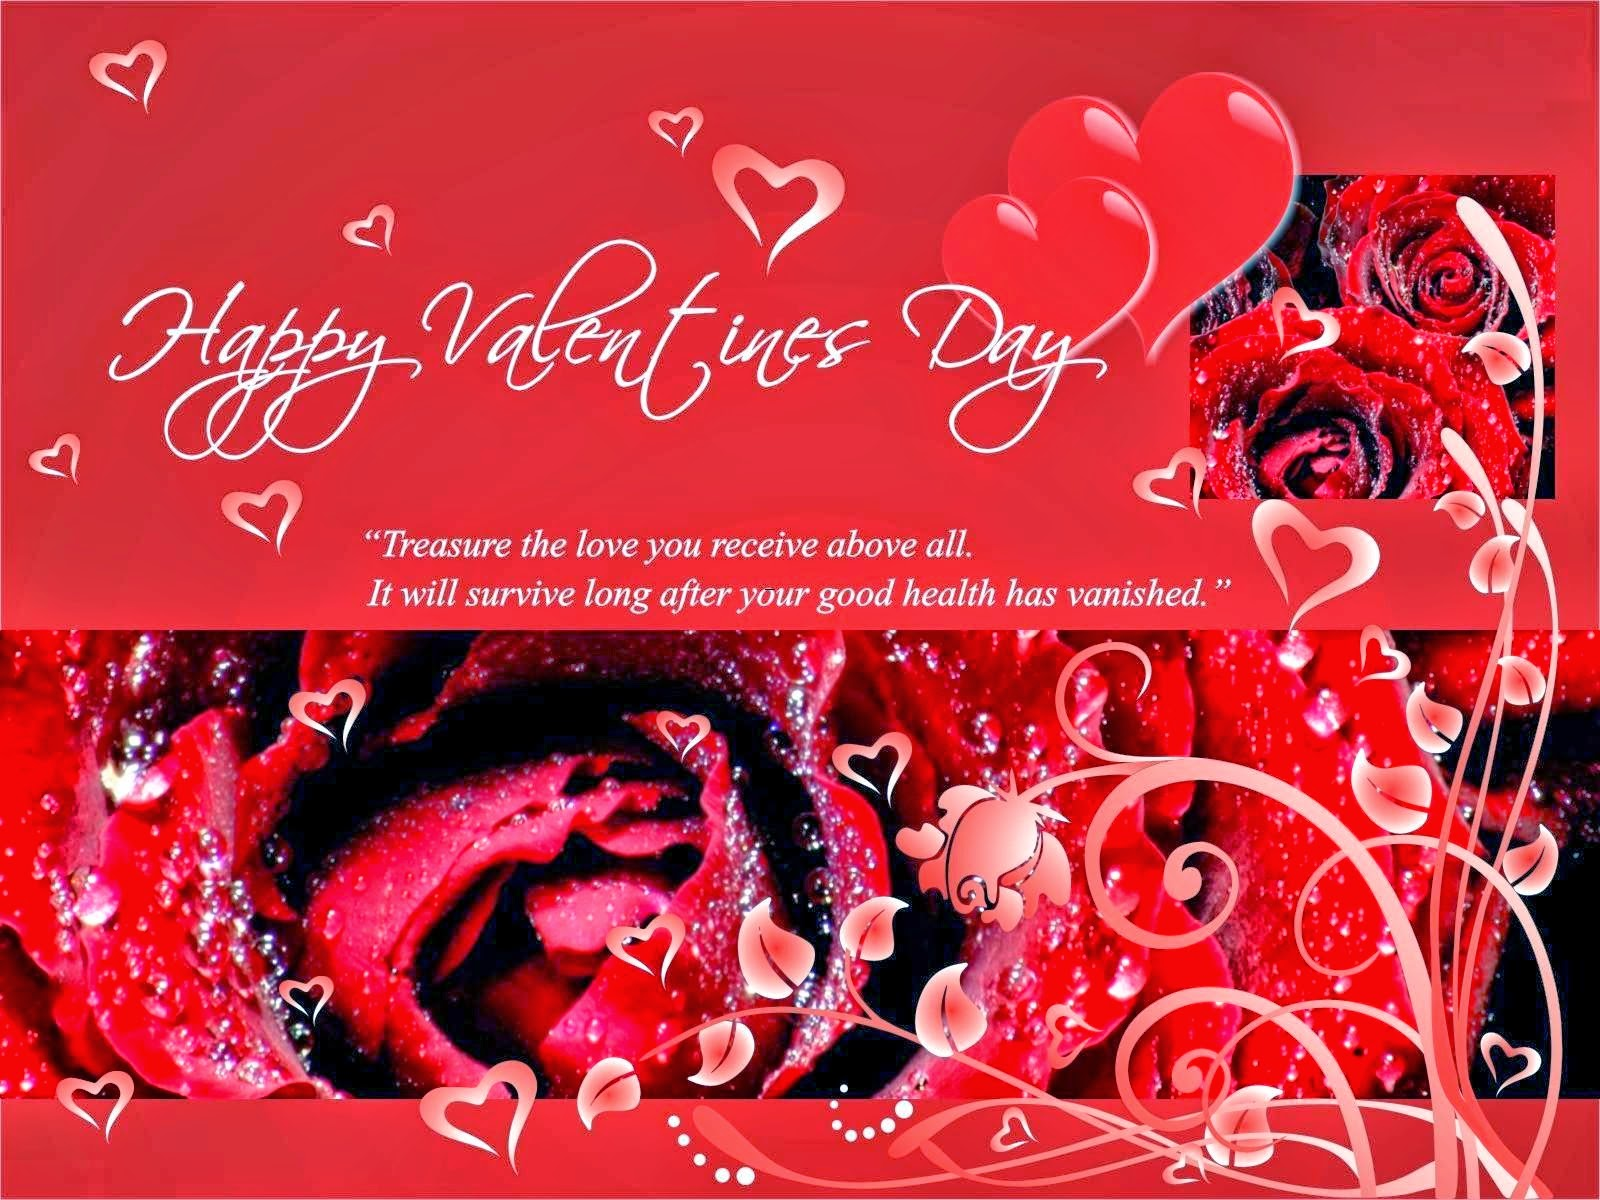 valentine's day images sms greetings 2015 desktop wallpapers | happy